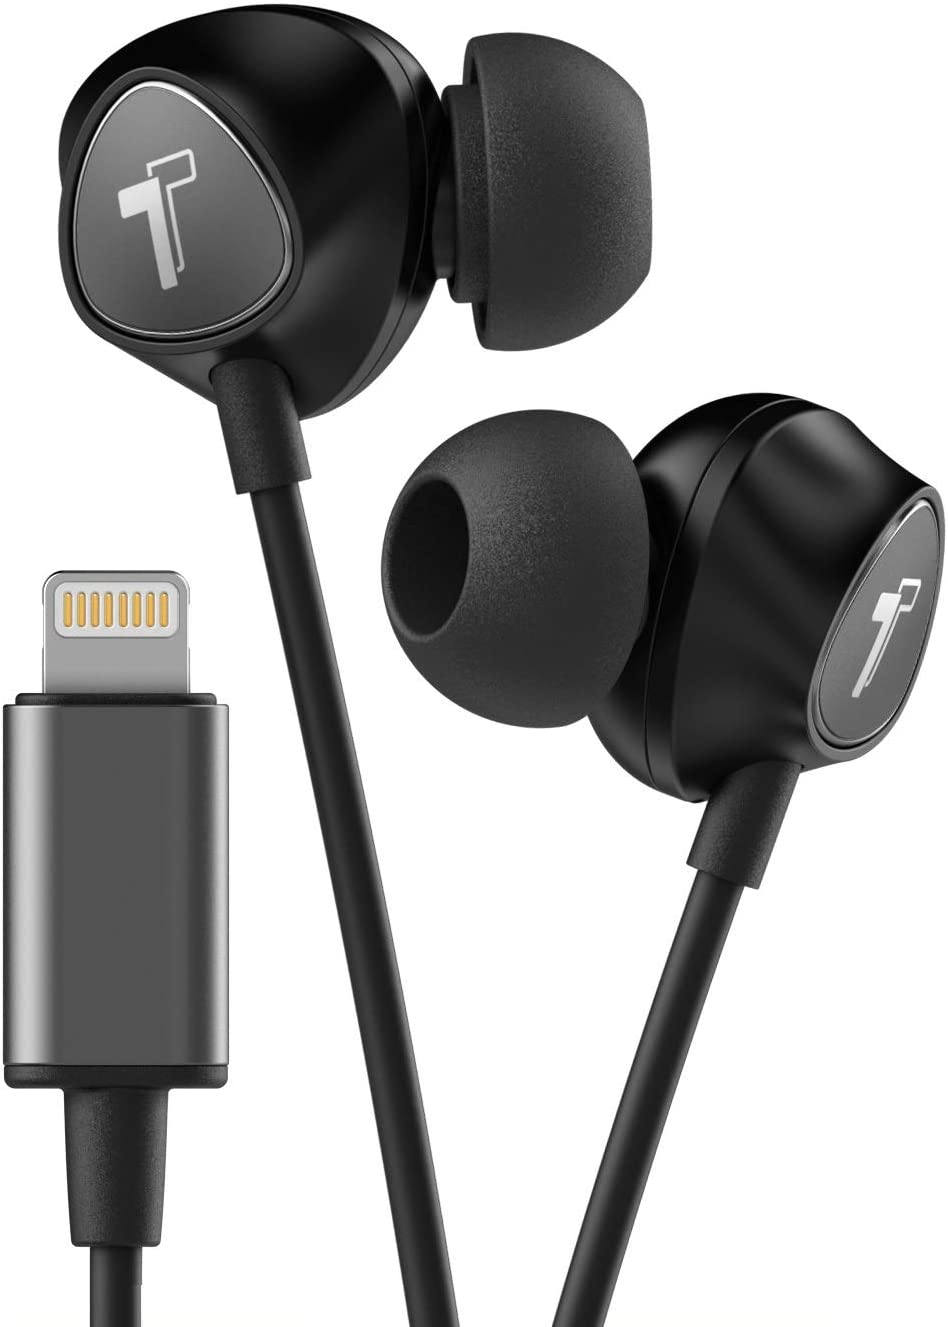 Thore Wired iPhone Headphones with Lightning Connector Earphones - MFi Certified by Apple Earbuds Wired in-Ear Microphone and Volume Remote for iPhone 12,13, Pro Max, Mini, XR, Xs, 11, 7, 8 (Black)